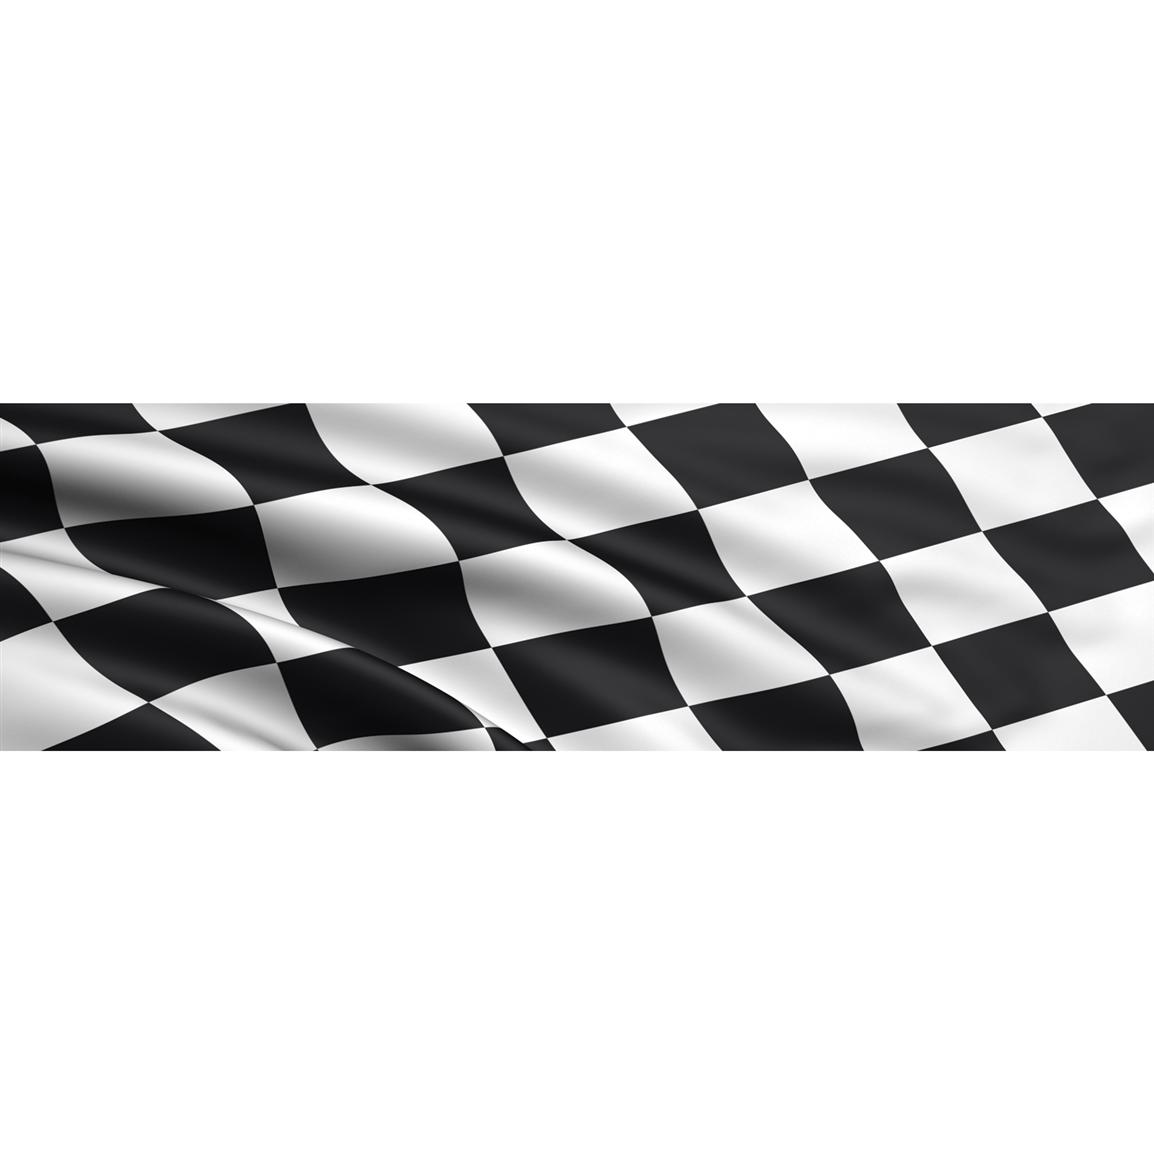 Free Checkered Banner Cliparts, Download Free Clip Art, Free.